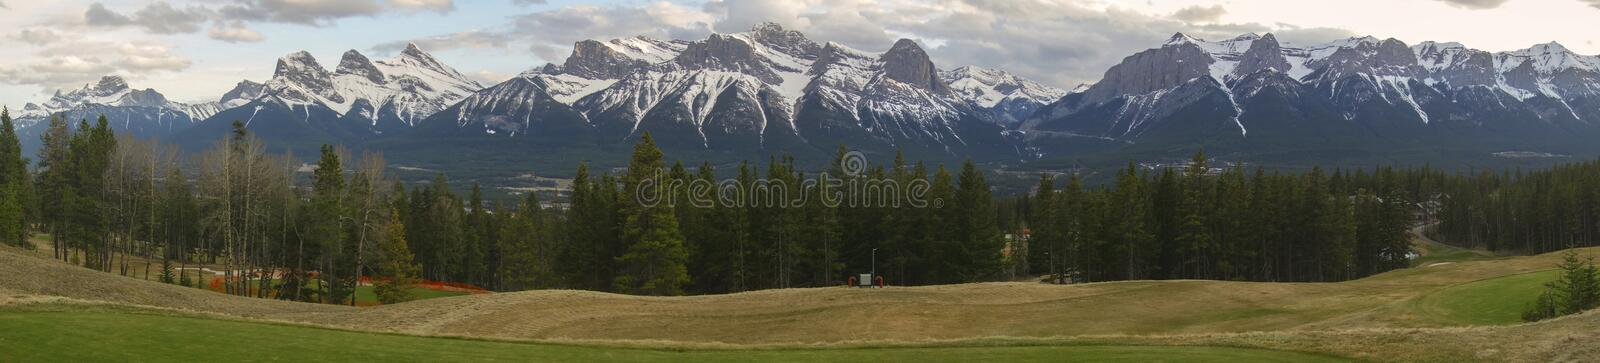 Valle Canmore Alberta Foothills Wide Panoramic Landscape dell'arco fotografia stock